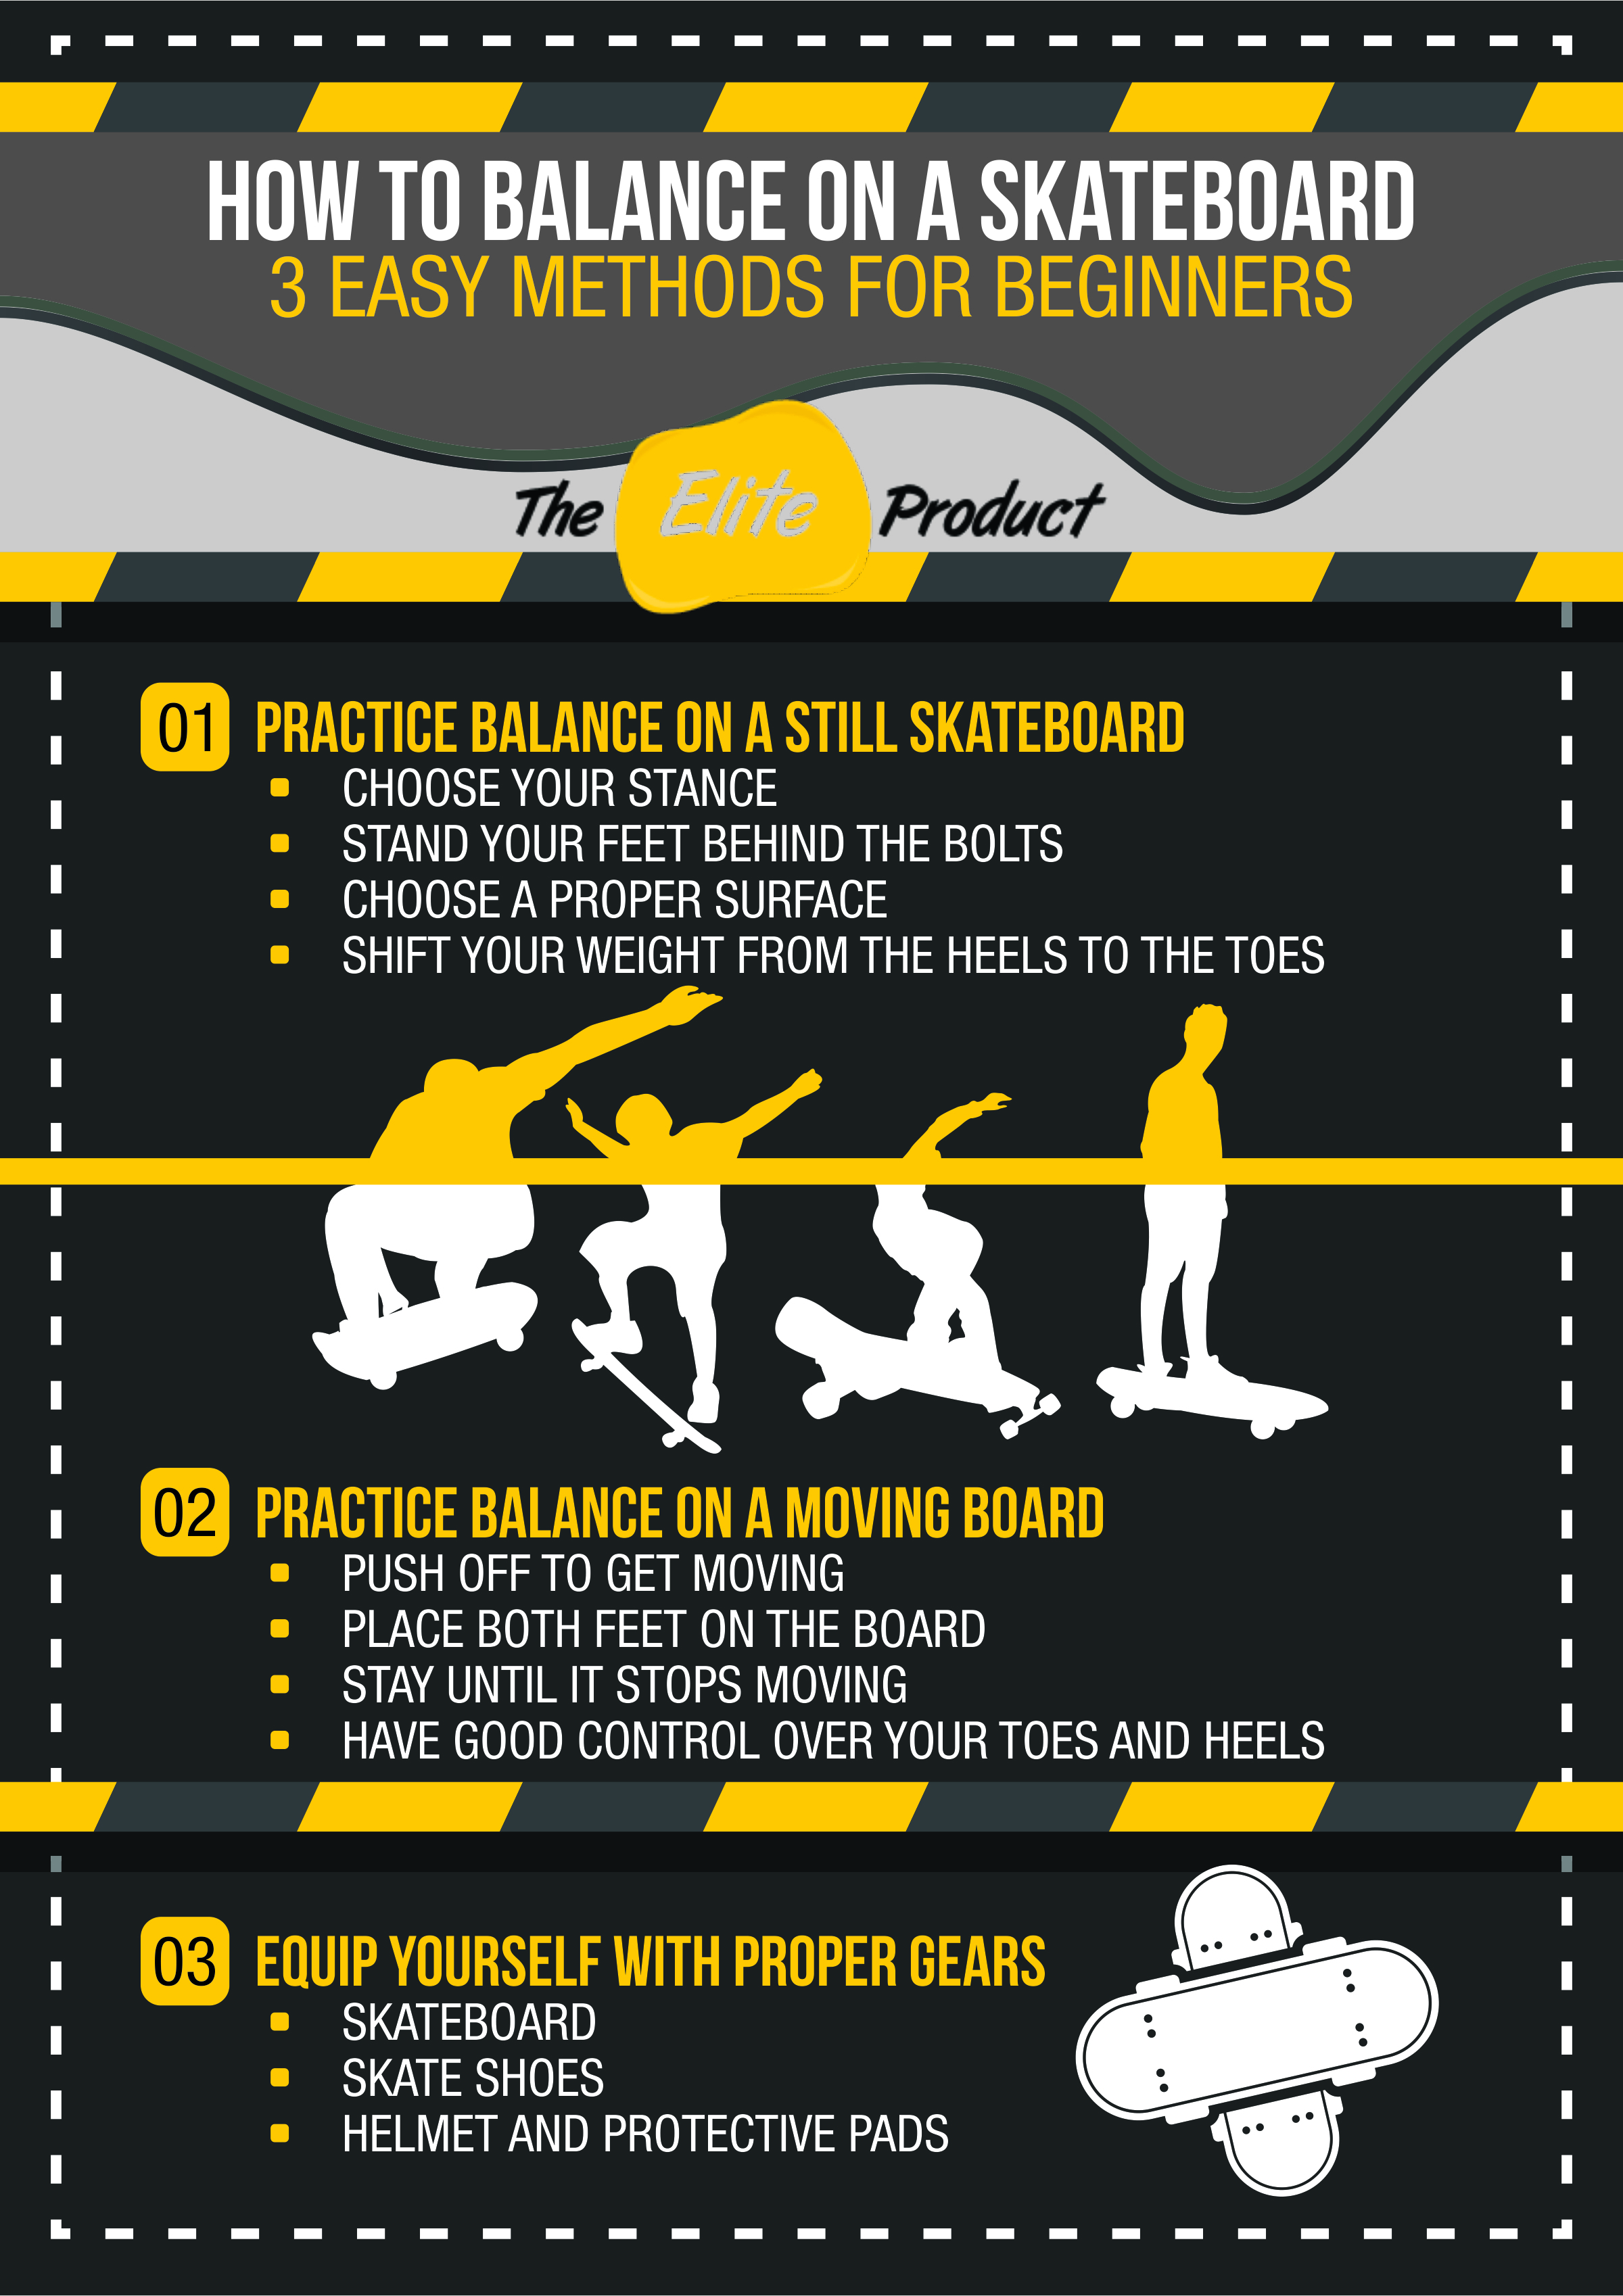 Three beginners step for learning to balance on a skateboard.